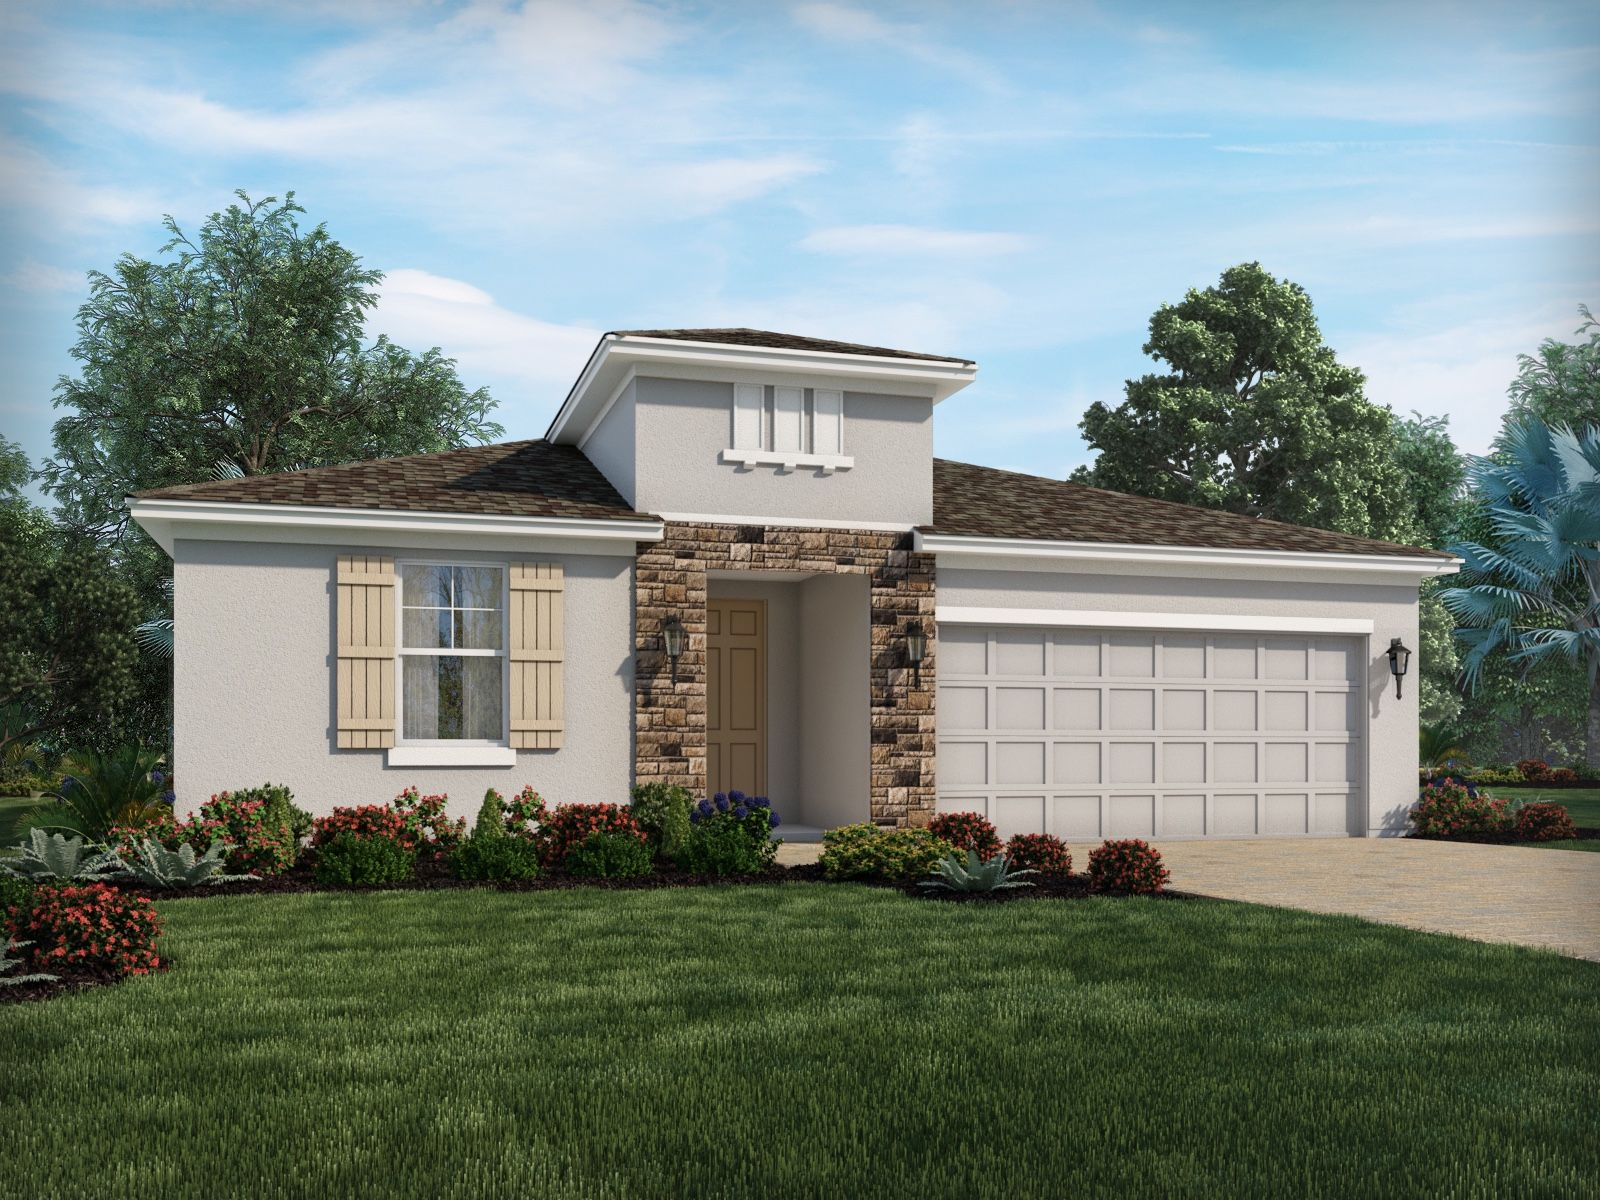 New Homes | Search Home Builders and New Homes for Sale ... on taylor morrison home plans, lennar home plans, white home plans, toll brothers home plans, beazer home plans, centex home plans, mercedes home plans, dr horton home plans,